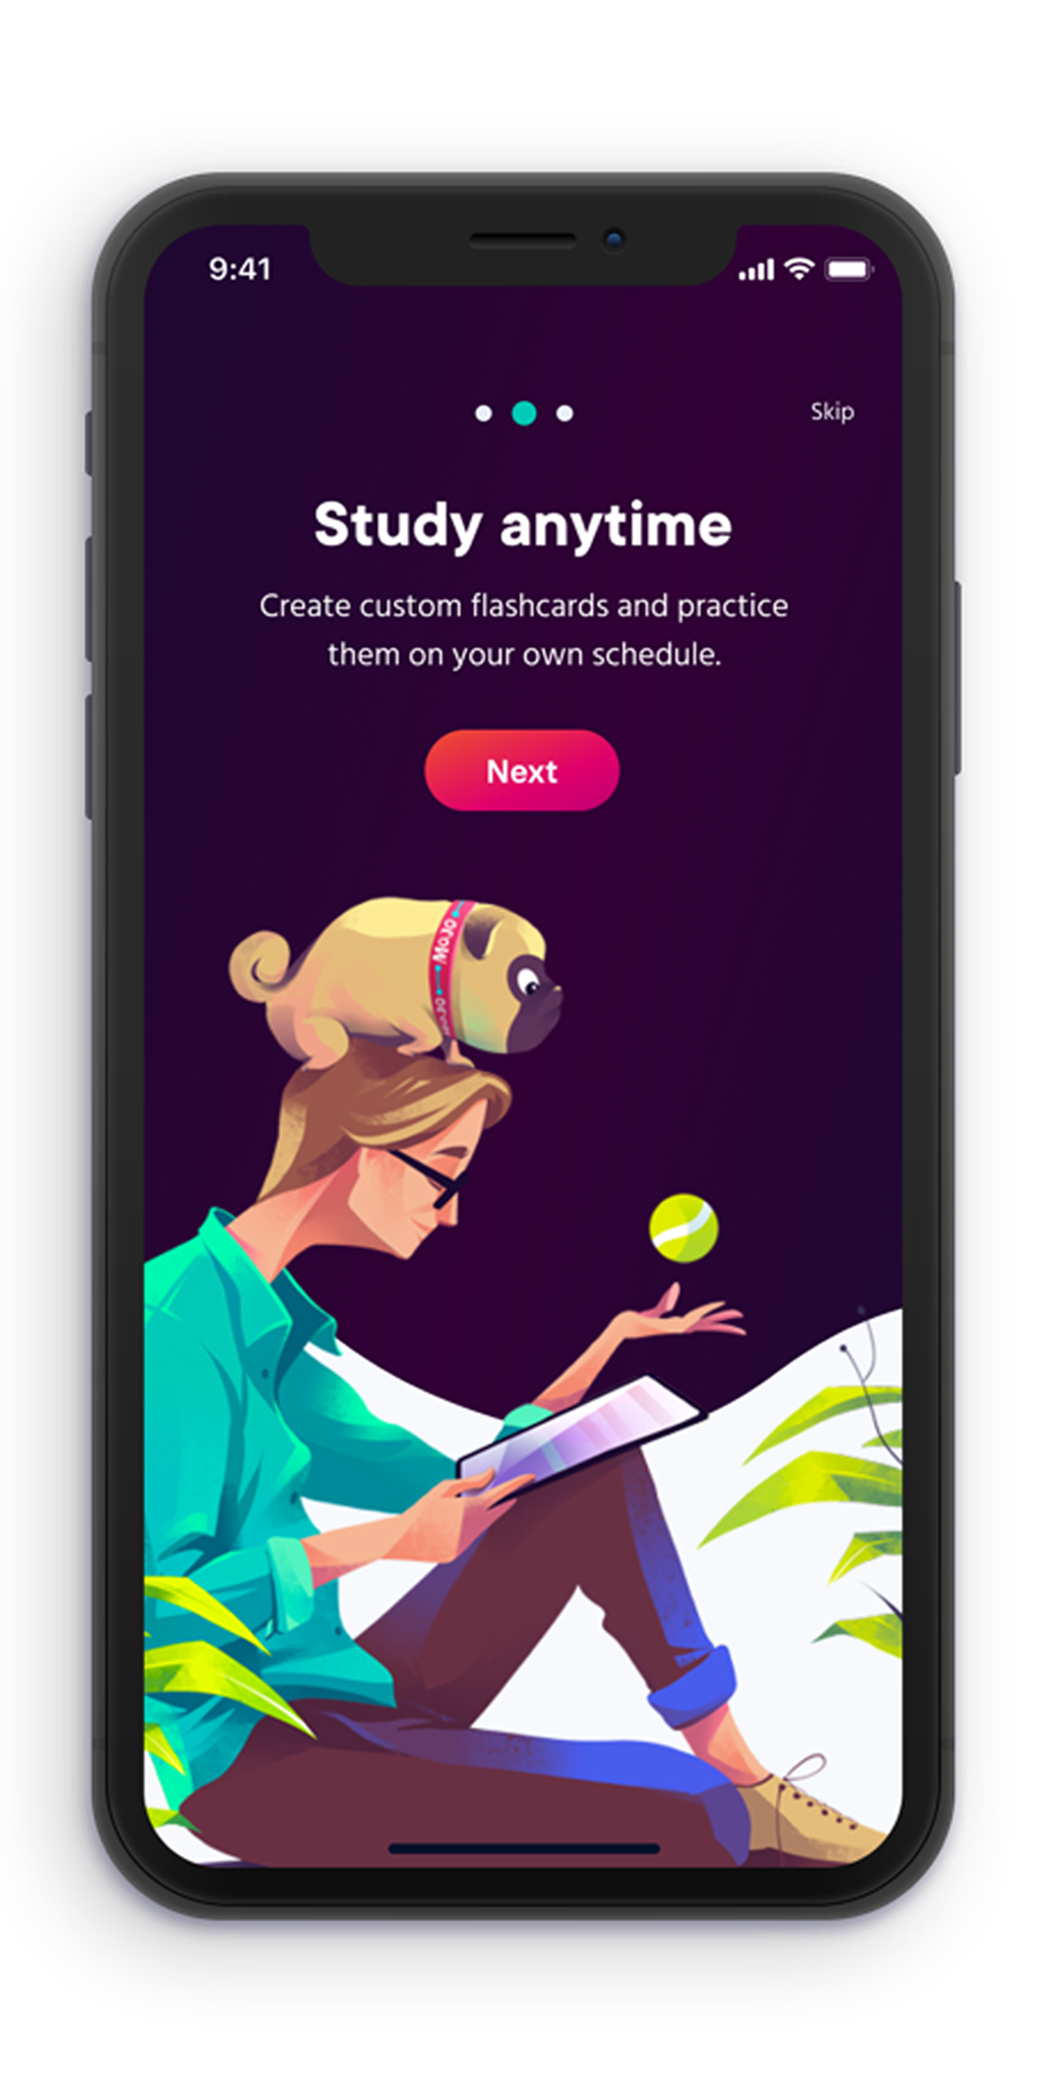 Pearson+ includes functions and features that are important to students, including convenient,on the goaccess to books with a mobile app and desktop version,audio player, offlineaccess and study help including flashcards,advanced notetaking, practice questions, and tutoringdiscounts.